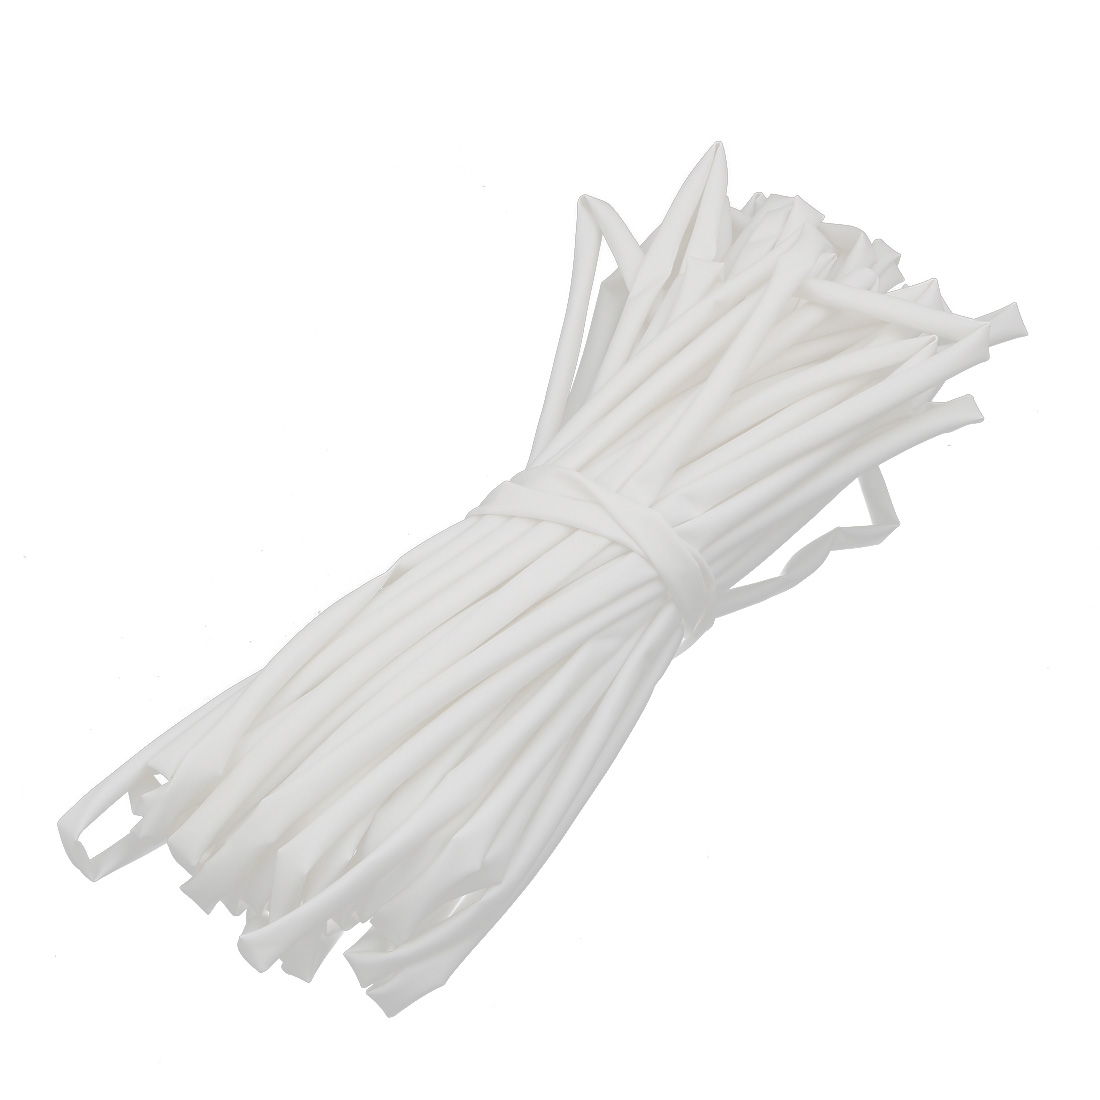 20M Length 5mm Inner Dia Polyolefin Insulated Heat Shrink Tube Wire Wrap White